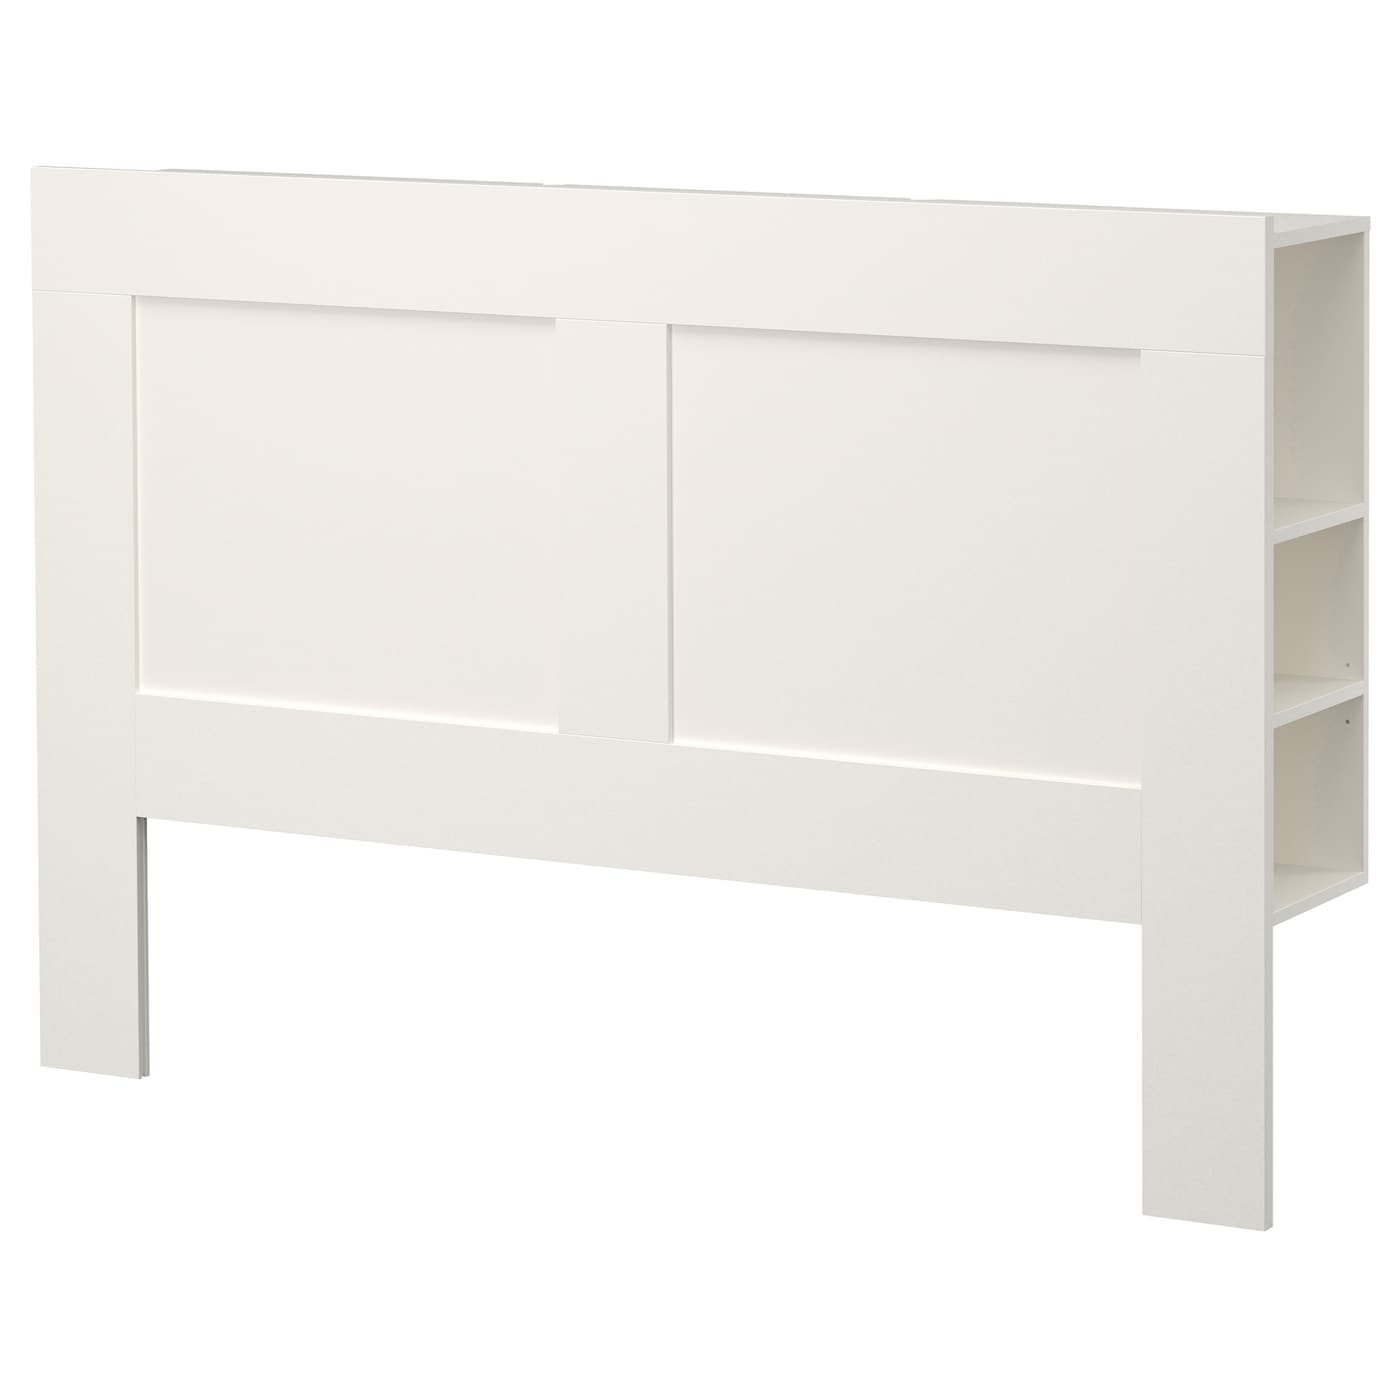 brimnes cadre lit avec rangement blanc 160 x 200 cm ikea. Black Bedroom Furniture Sets. Home Design Ideas